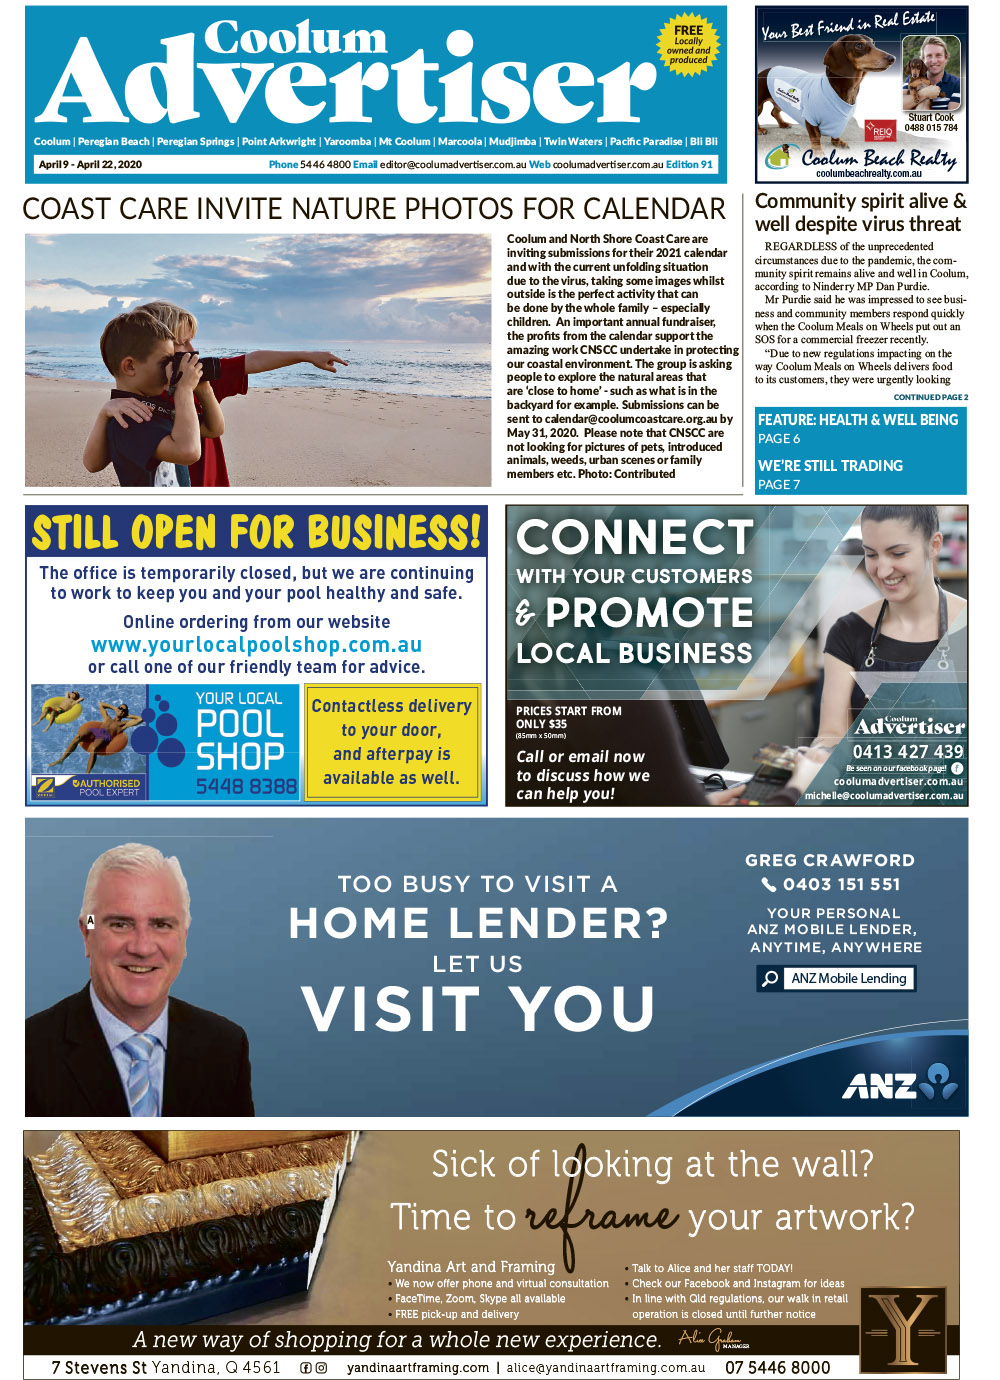 Coolum April 9-2020-issue91.indd